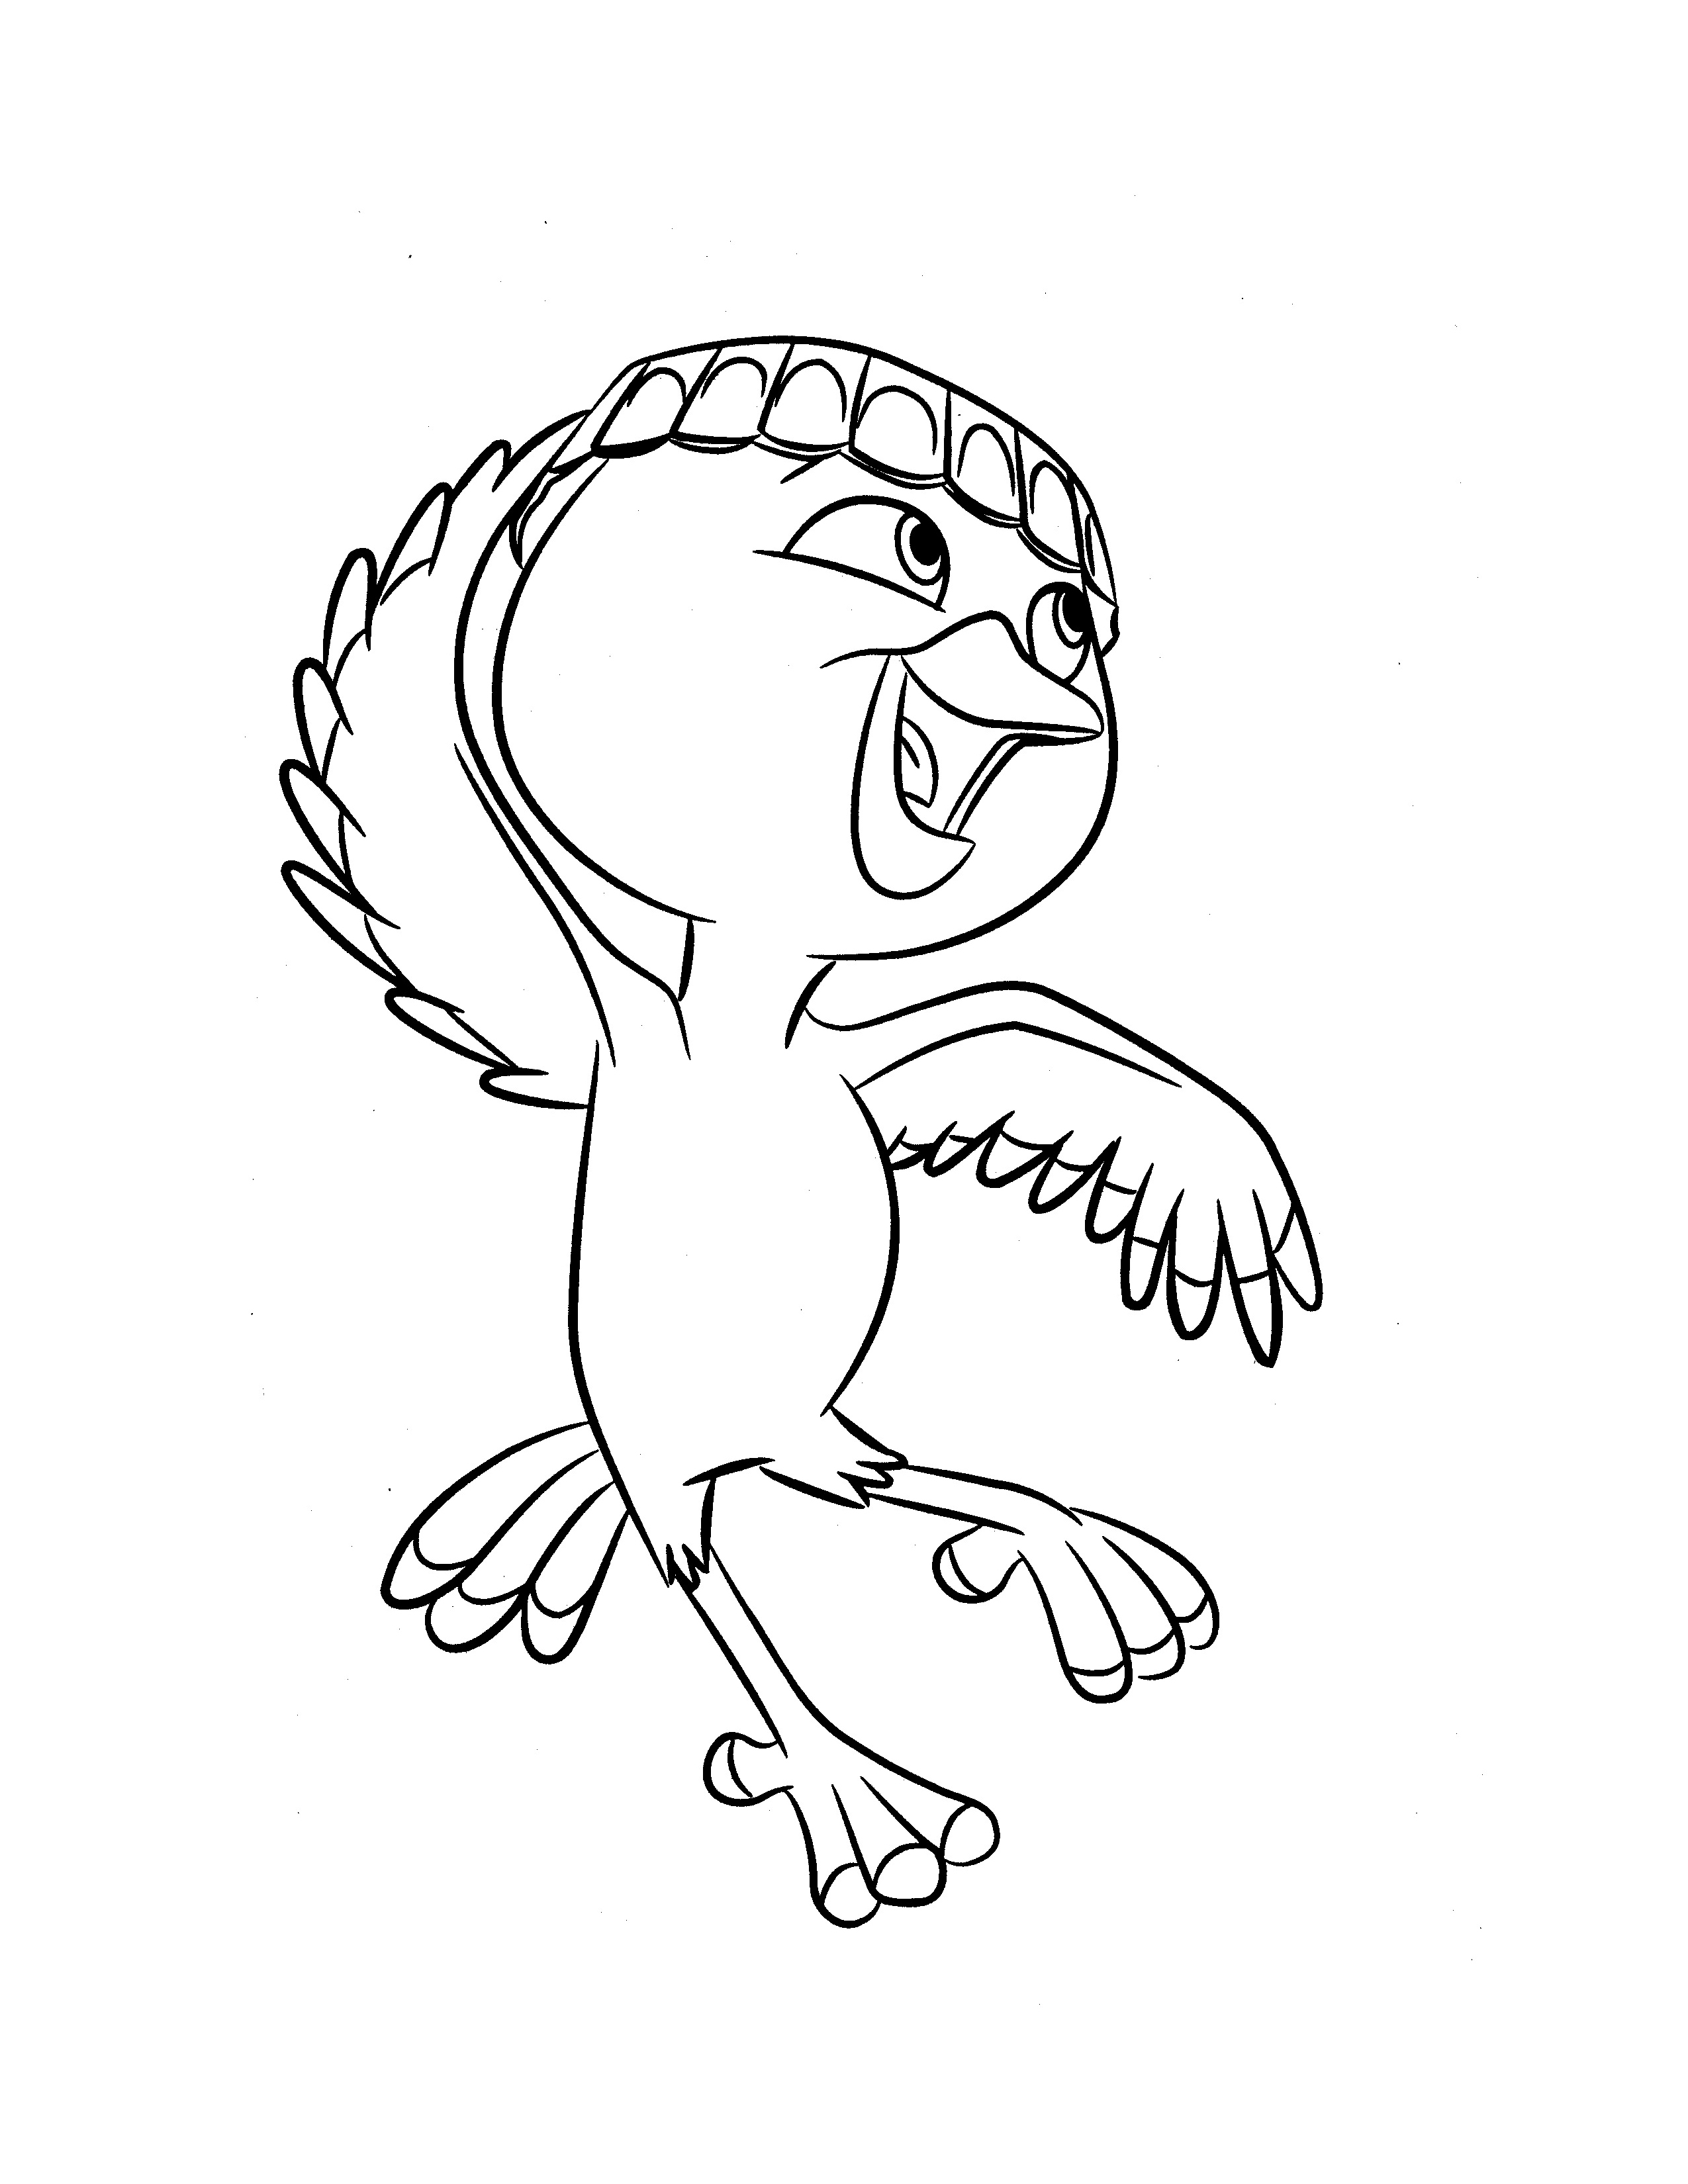 Adventures tale of birds Rio 20 Rio coloring pages Free